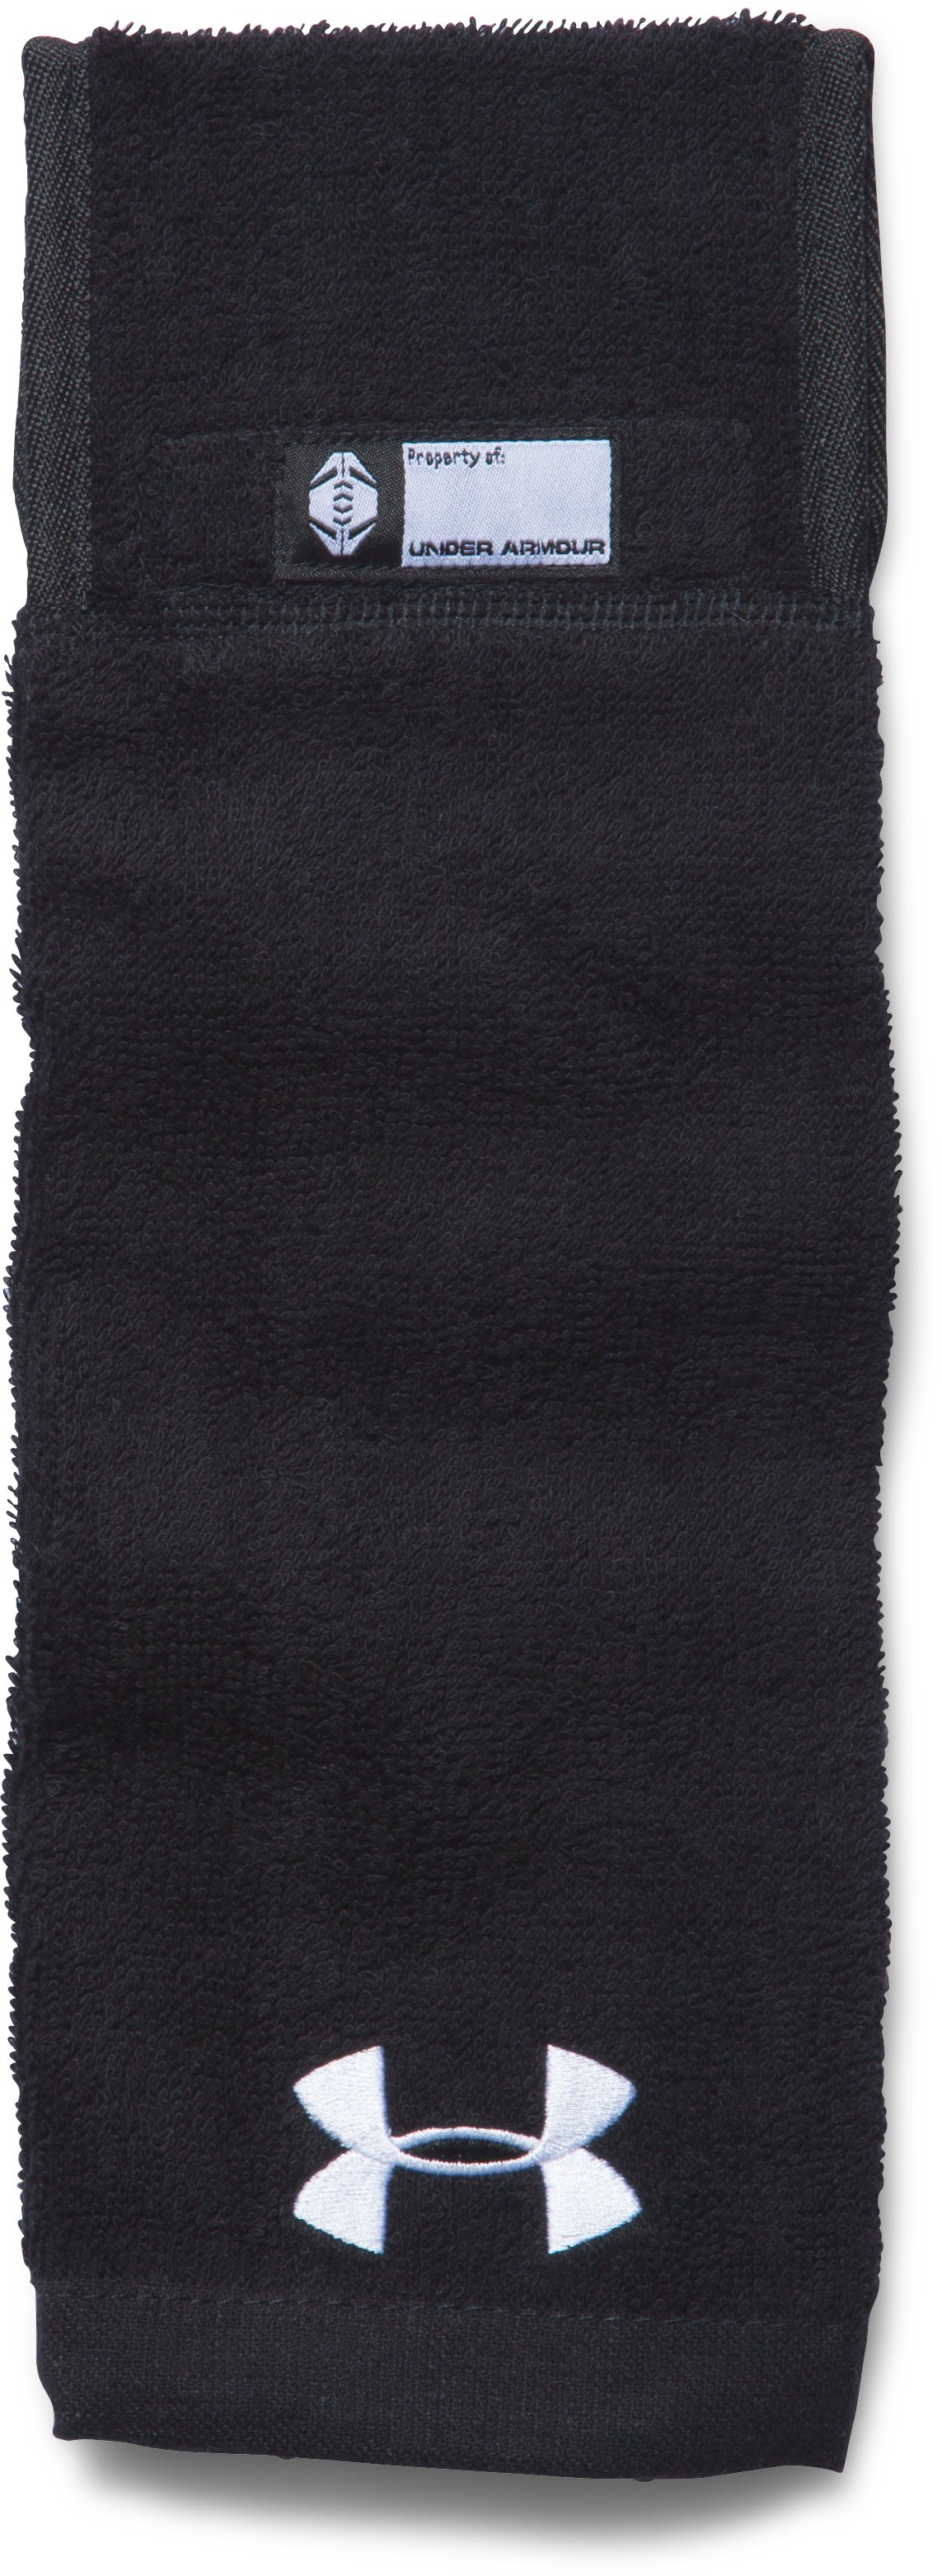 UA Undeniable Player Towel, Black